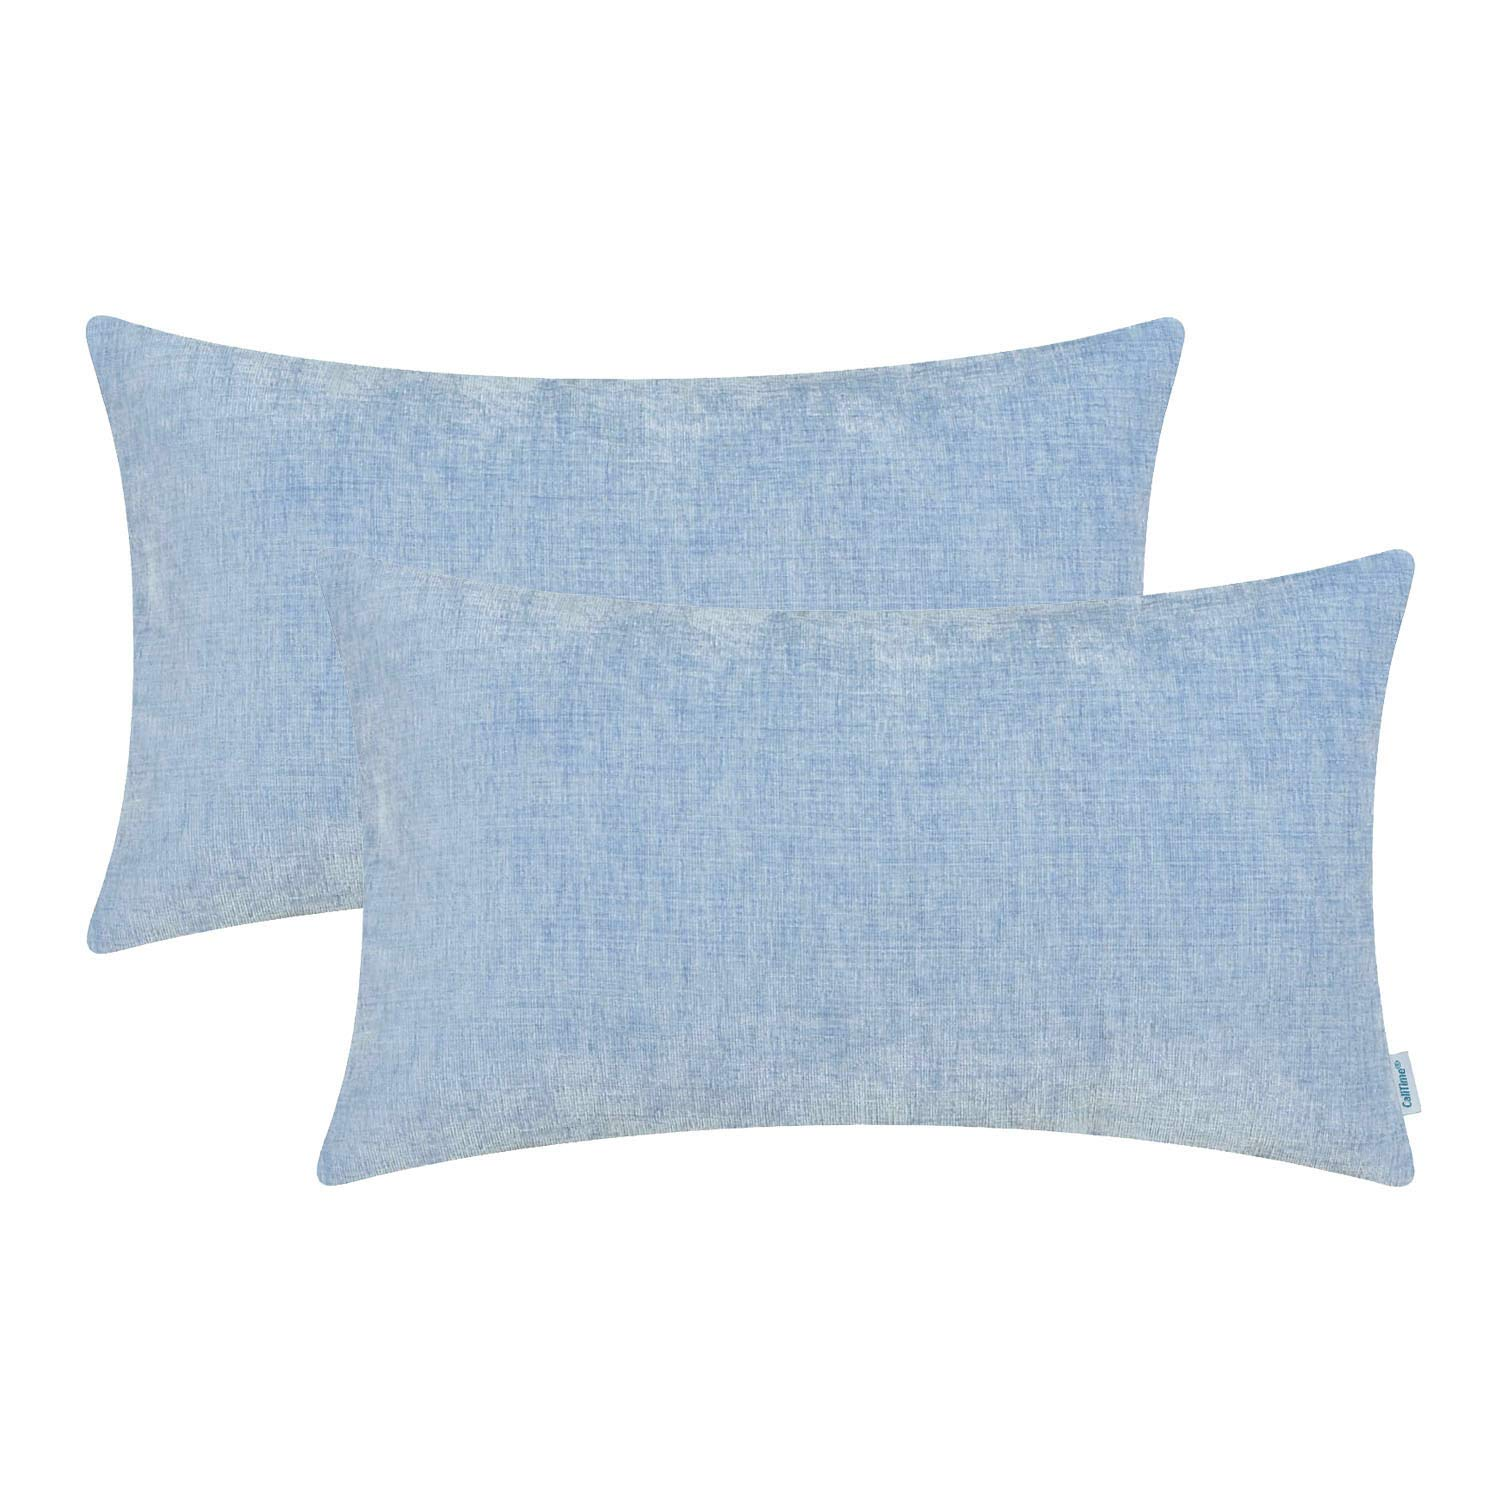 CaliTime Pack of 2 Cozy Bolster Pillow Covers Cases for Couch Sofa Home Decoration Solid Dyed Soft Chenille 12 X 20 Inches Baby Blue